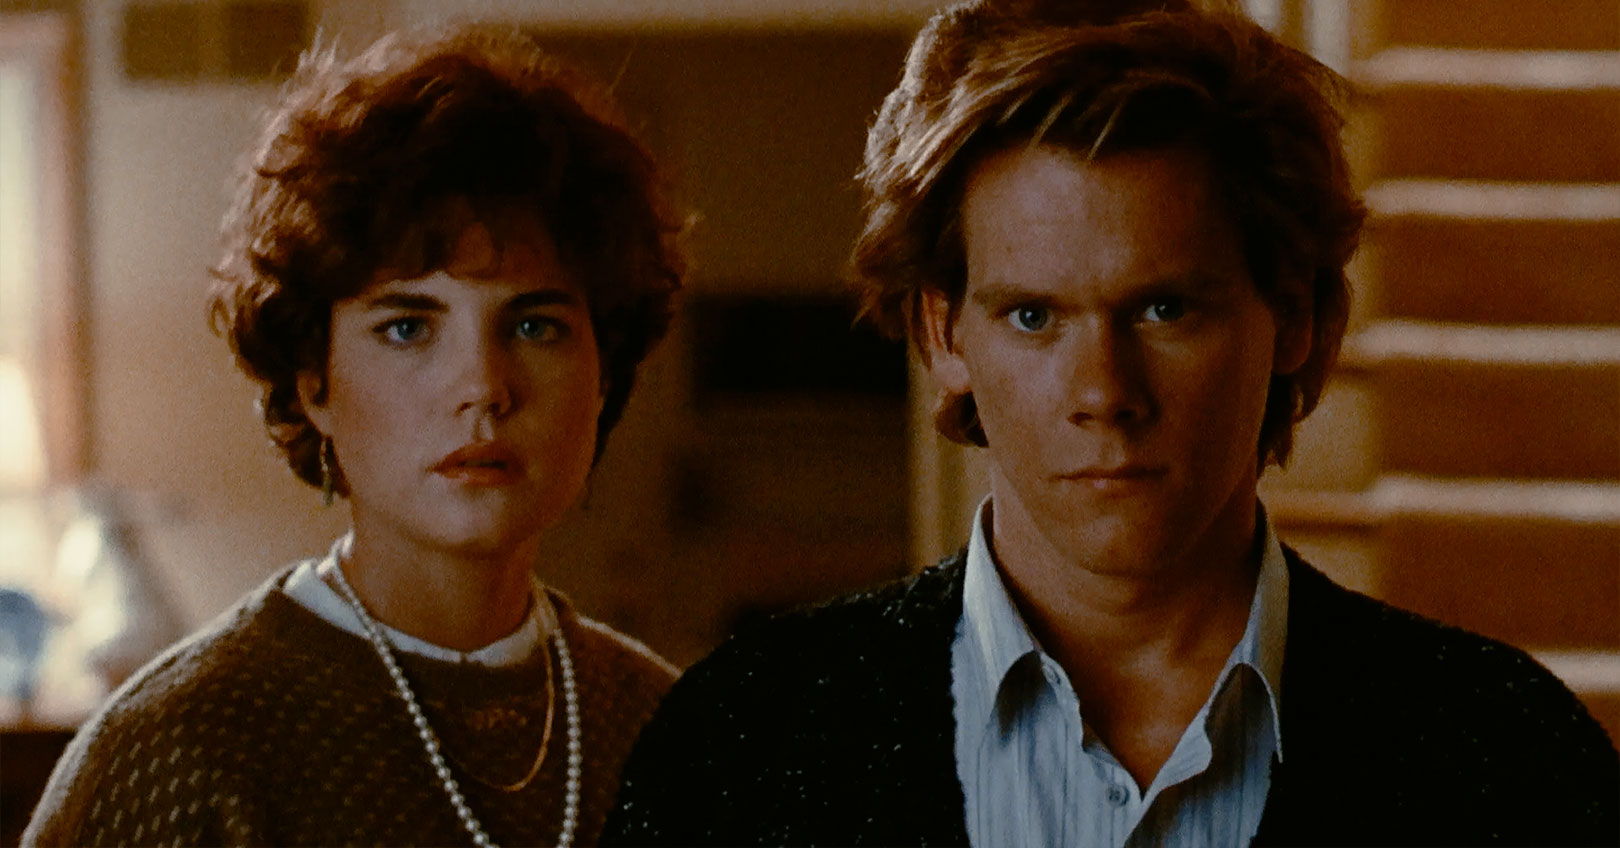 She's Having a Baby - Elizabeth McGovern and Kevin Bacon